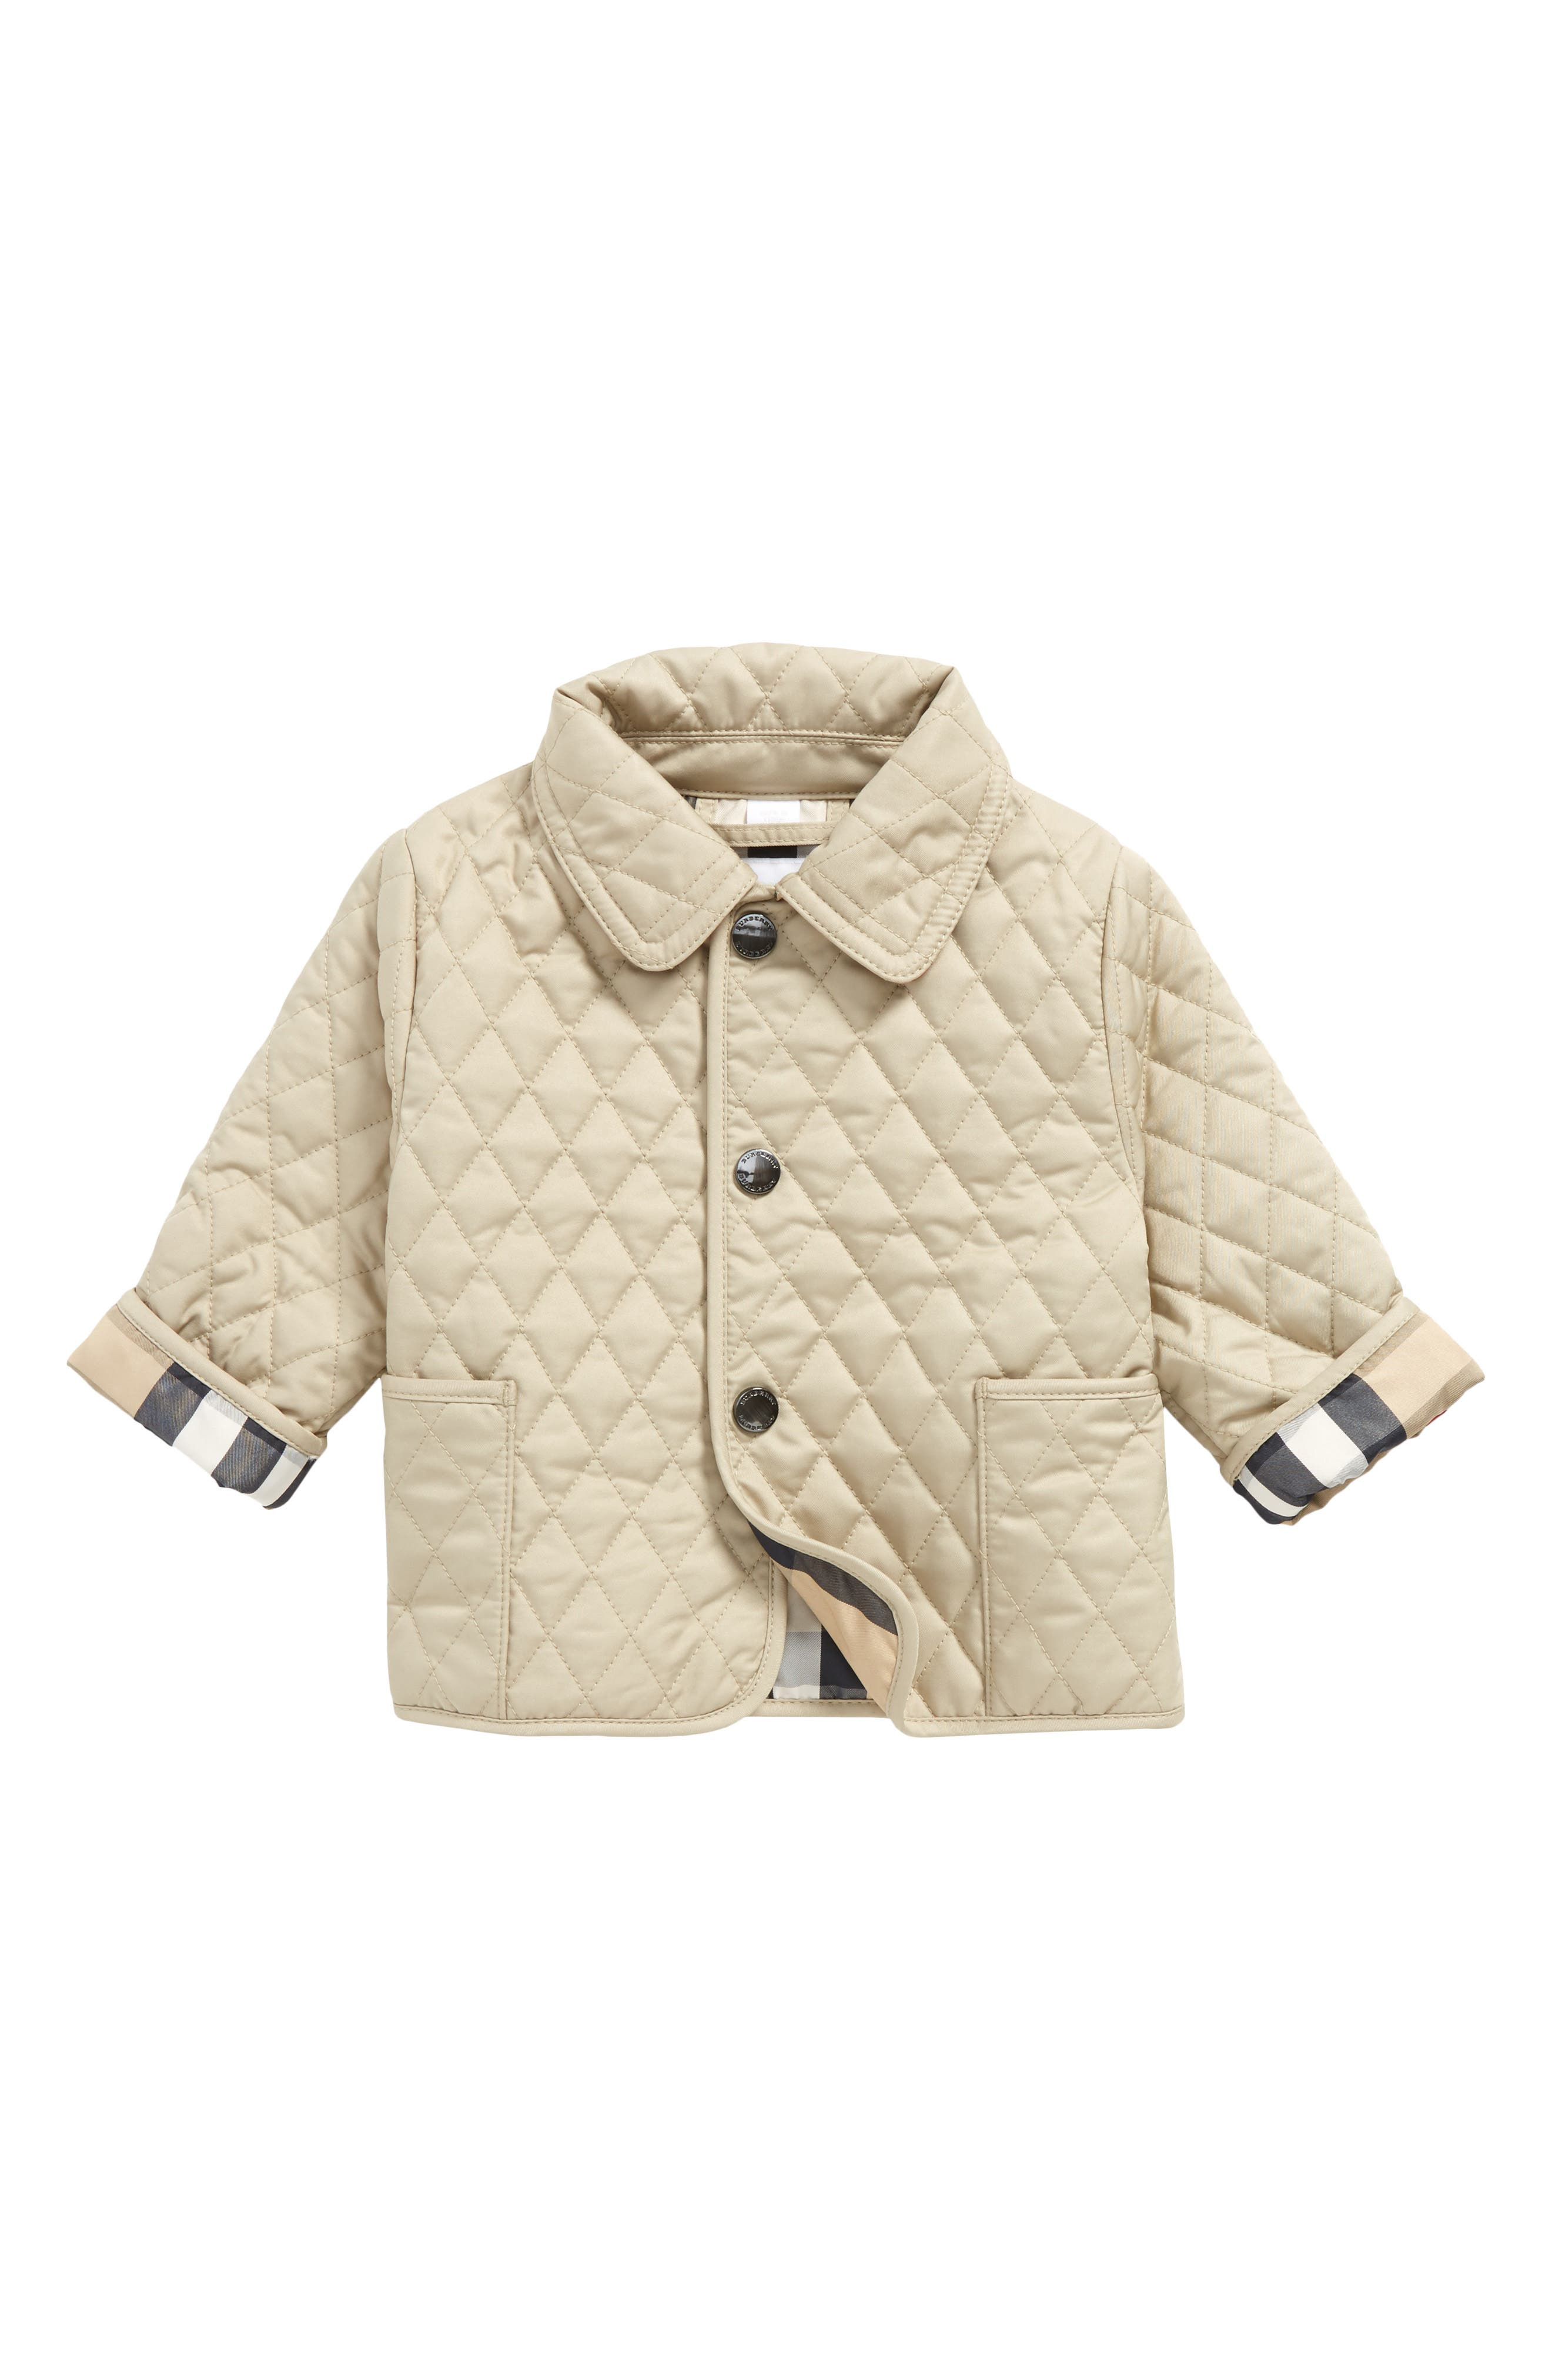 Main Image - Burberry Colin Quilted Jacket (Baby)